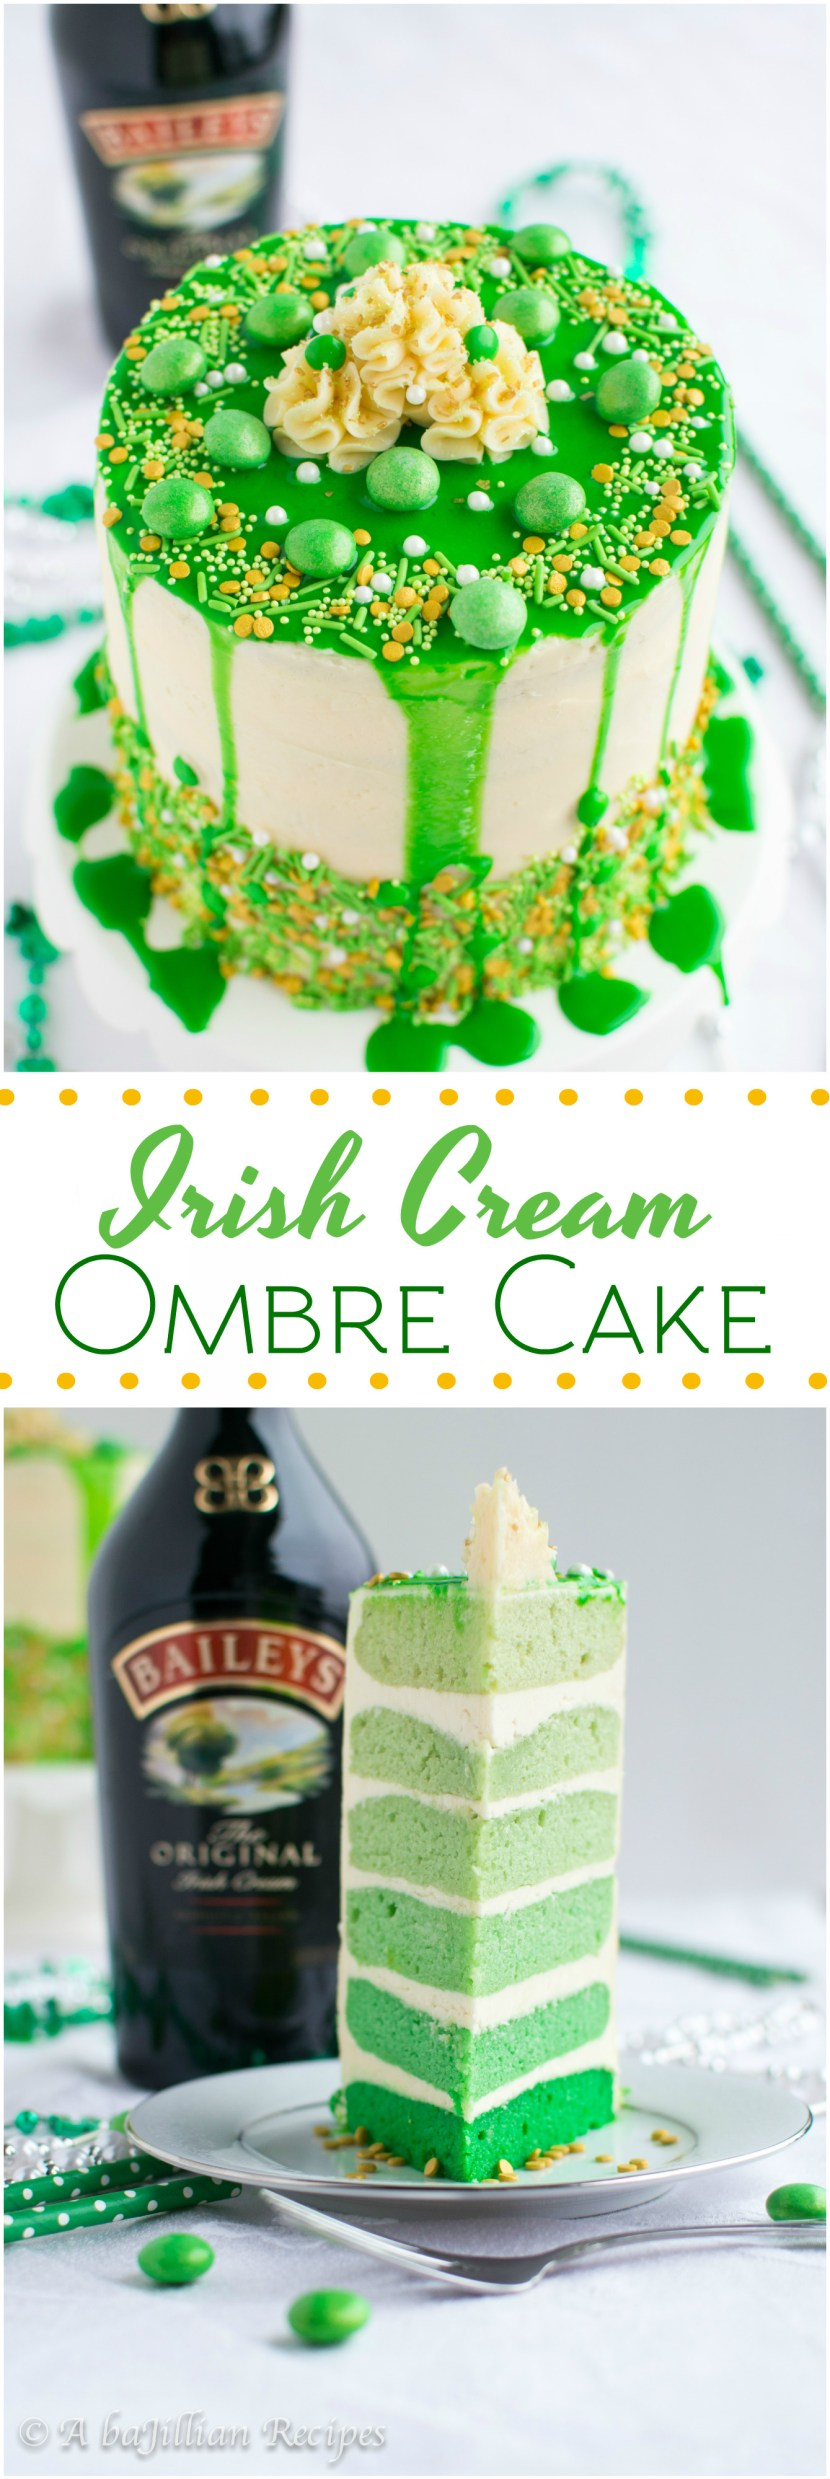 Irish-Cream-Ombre-Cake-abajillianrecipes.com2